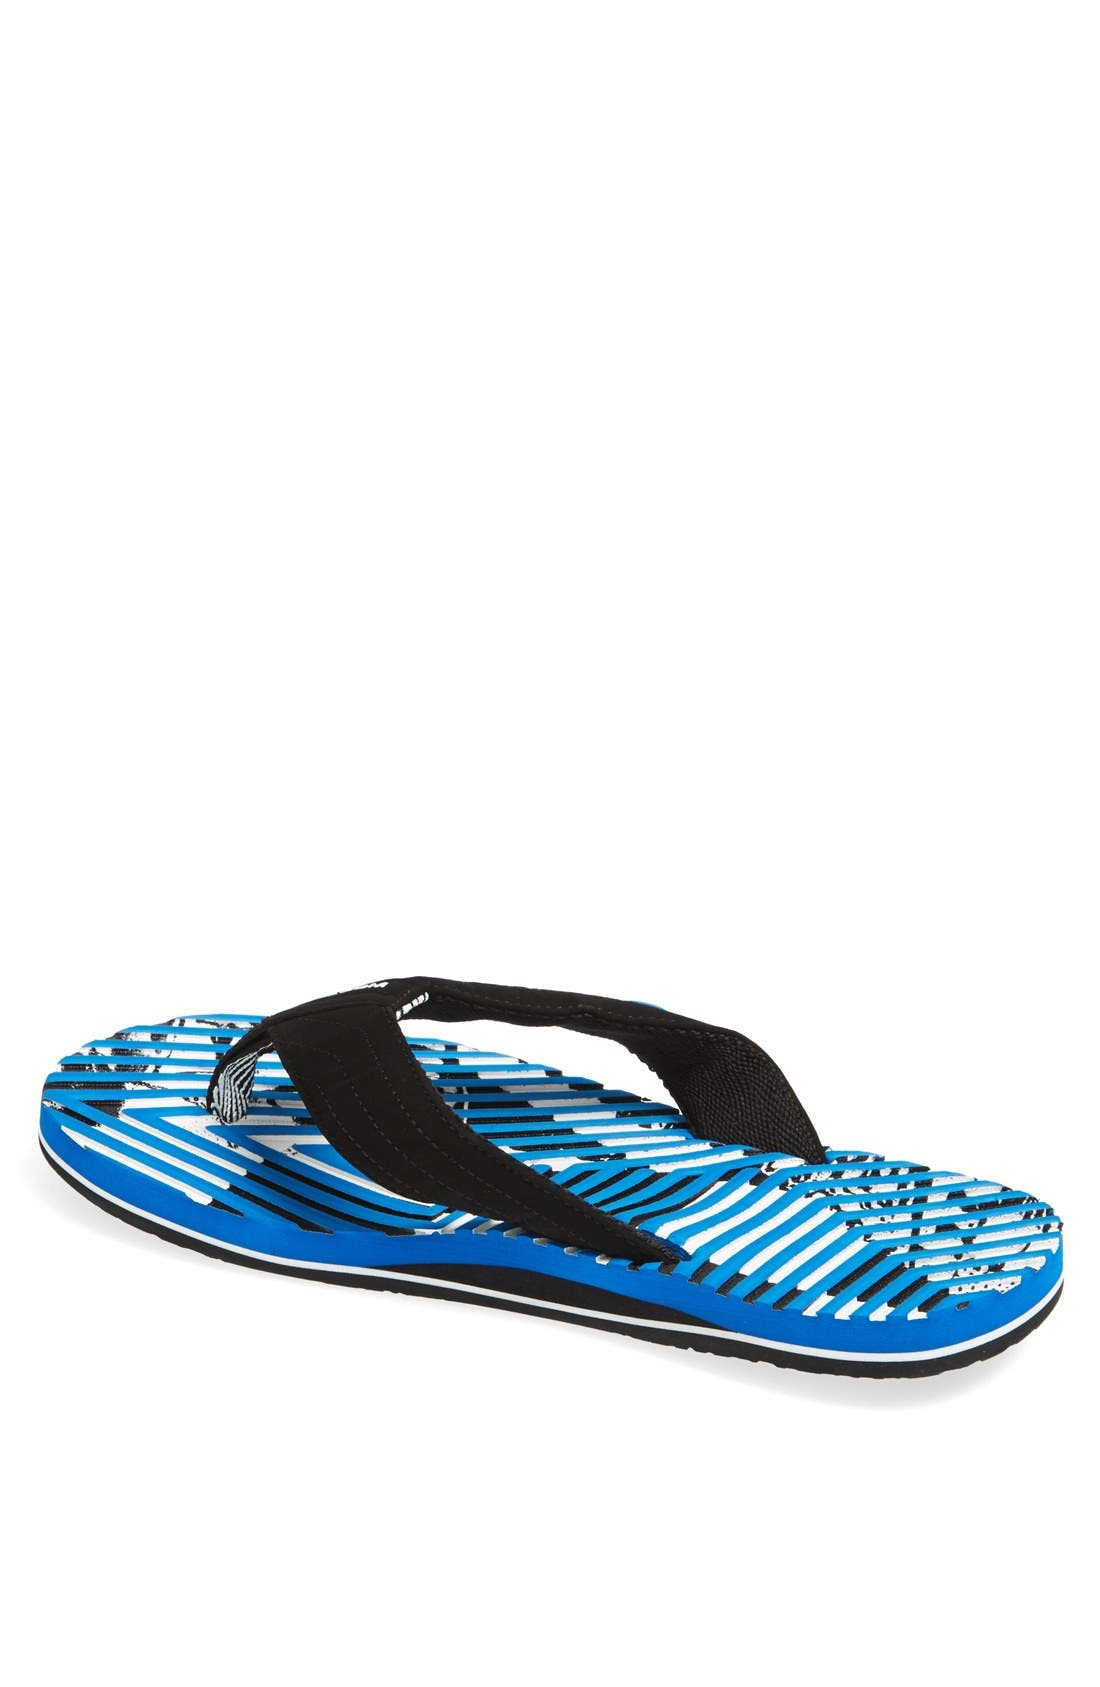 Alternate Image 2  - Volcom 'Fraction' Flip Flop (Men)